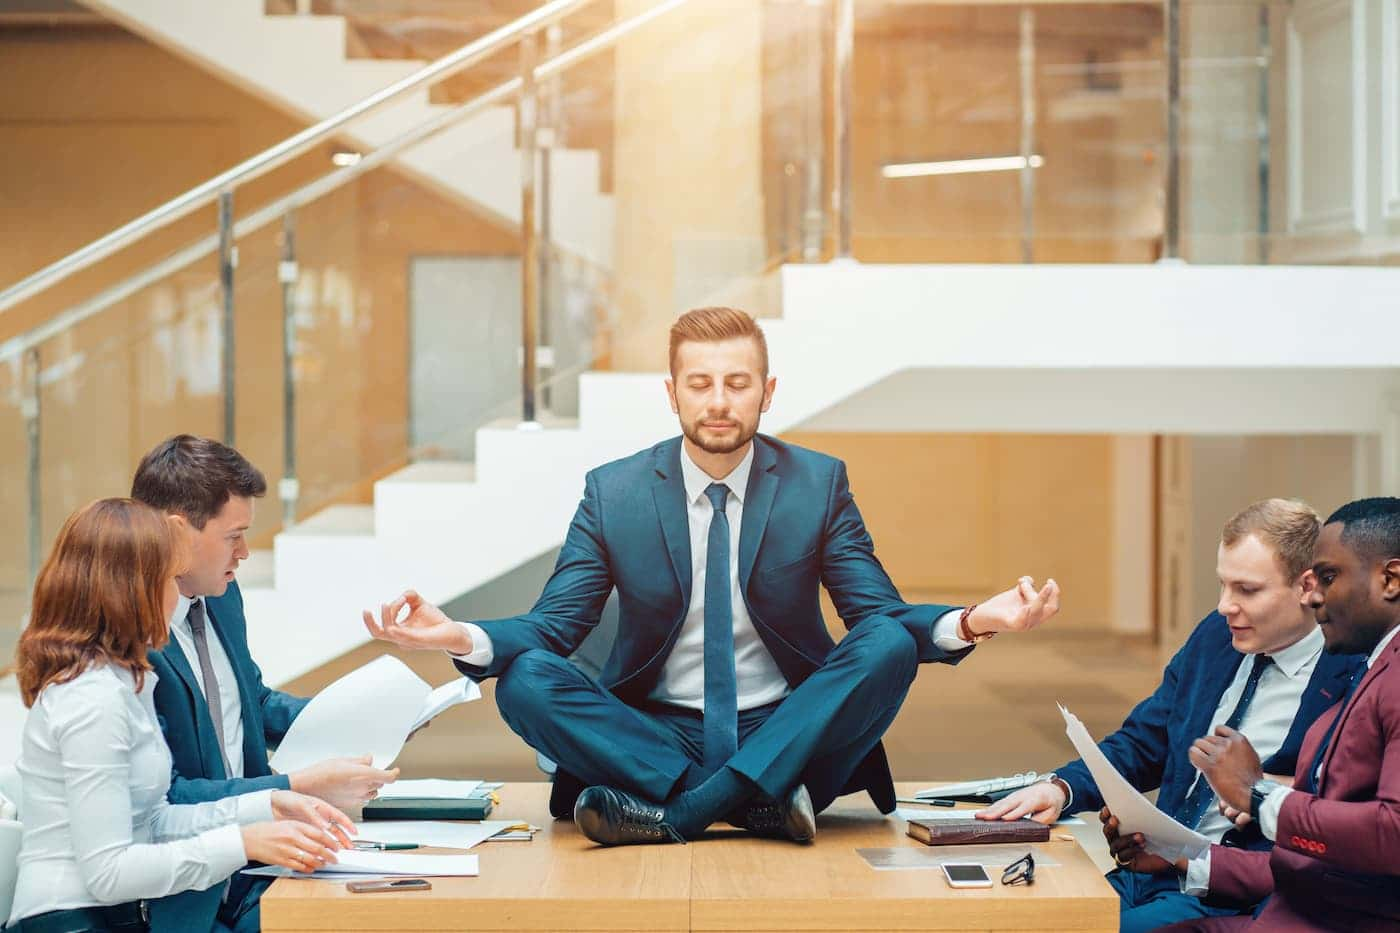 Businessman wearing a suit doing Yoga on the table